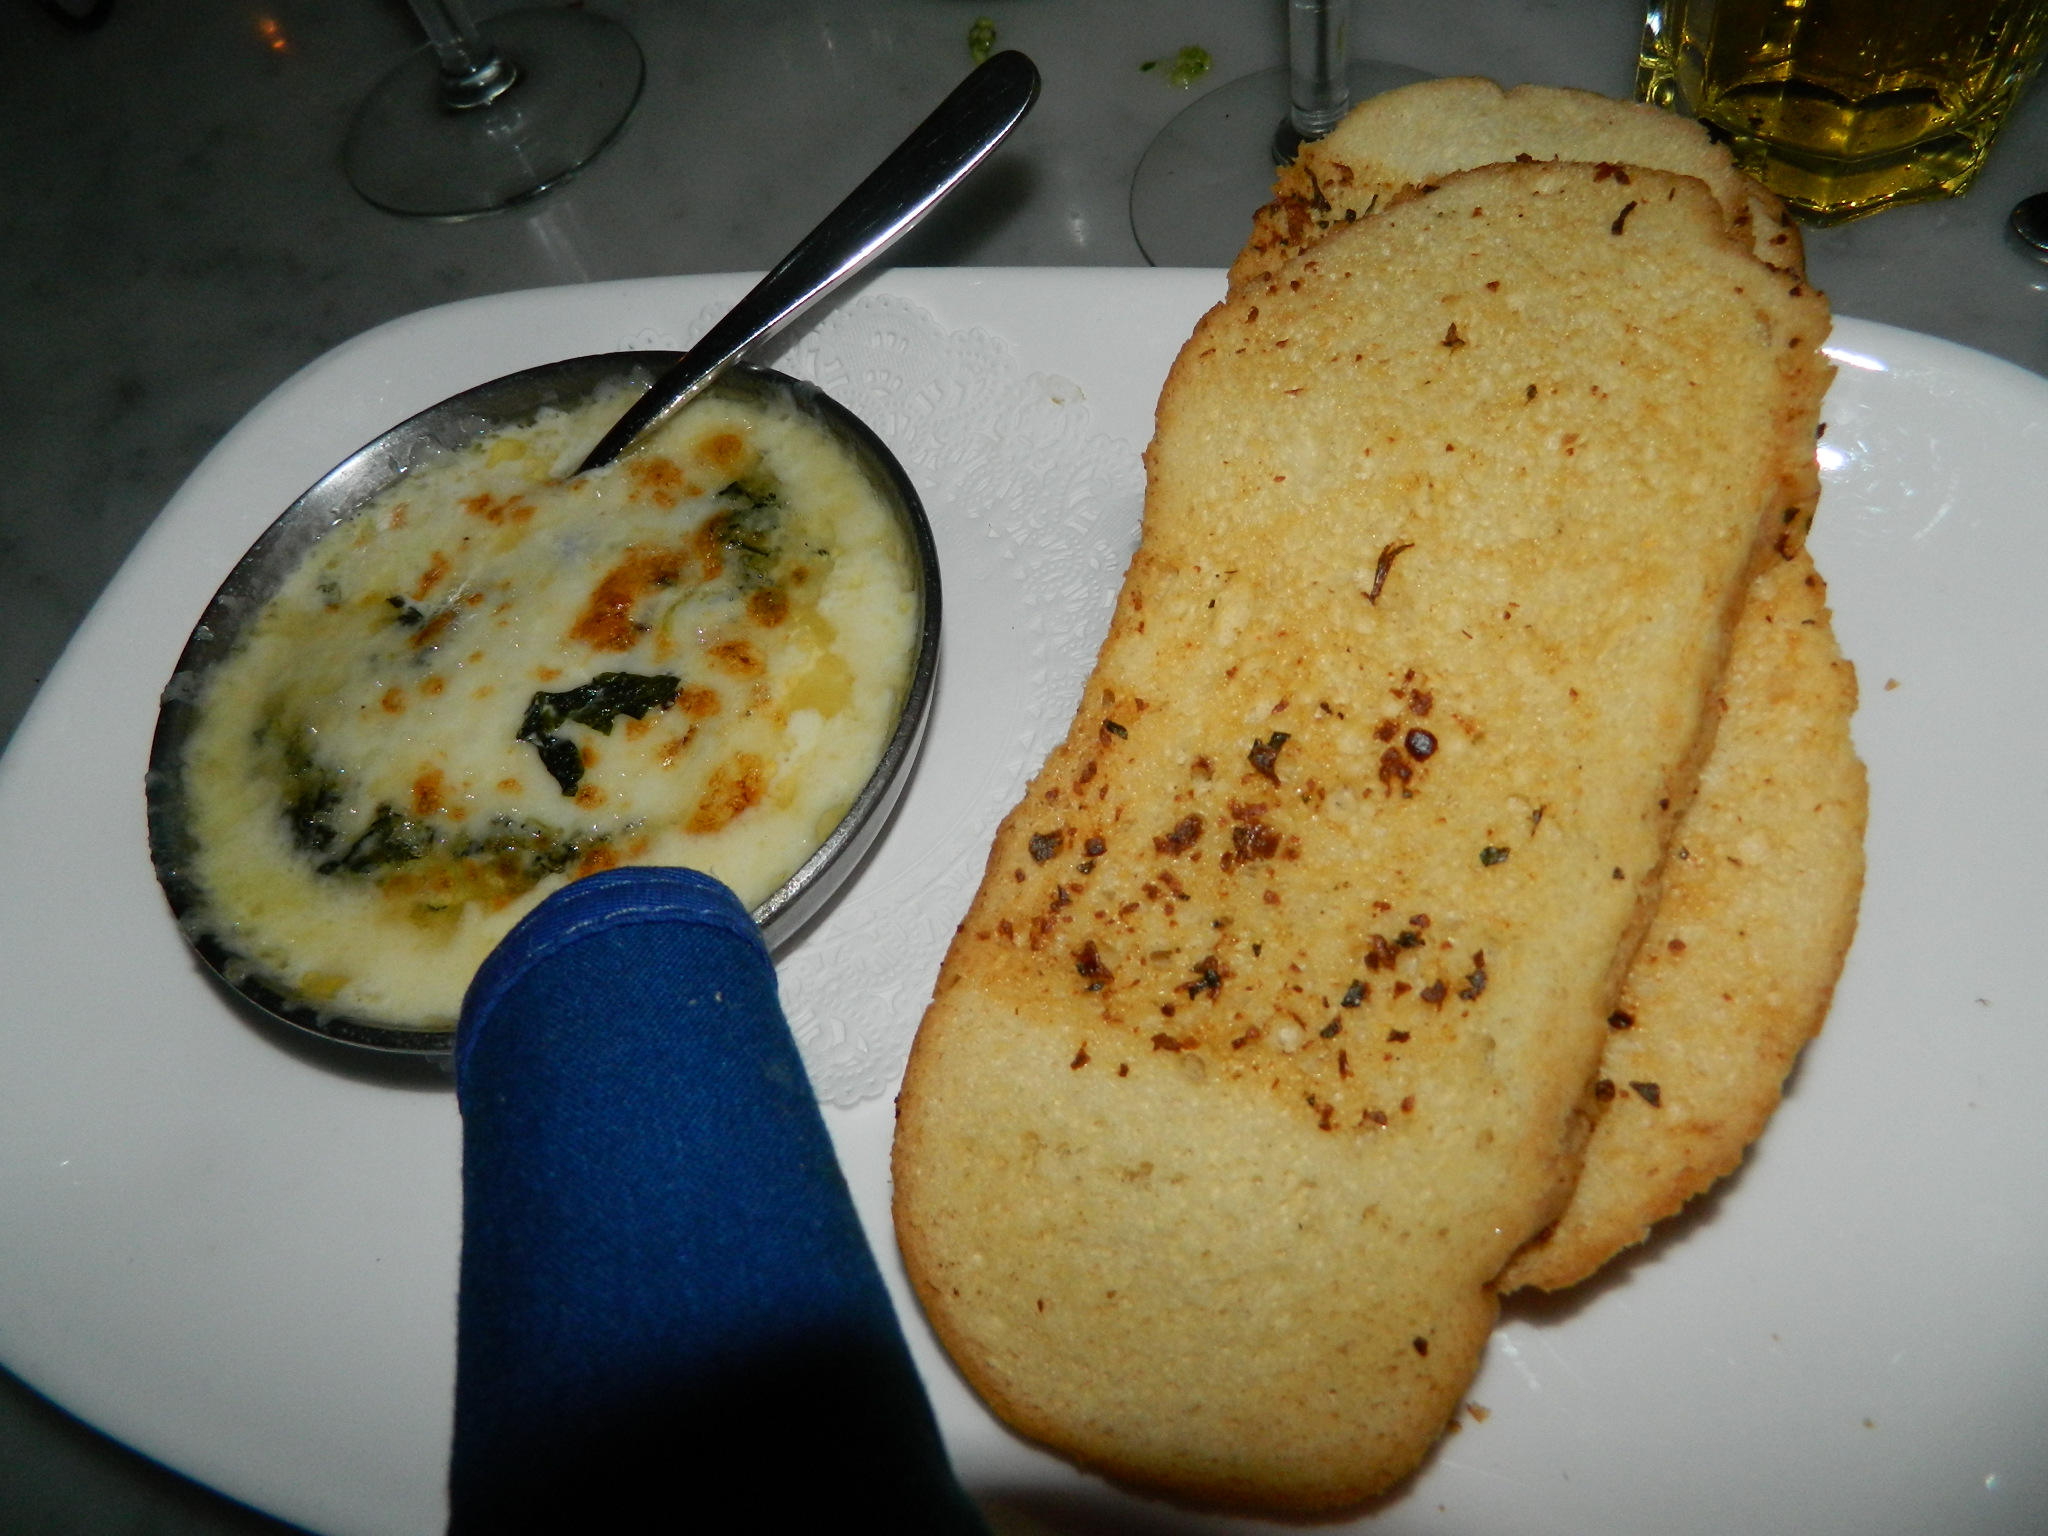 The Stinking Rose's take on Fondue, Garlic Spinach Fontina Fondue.